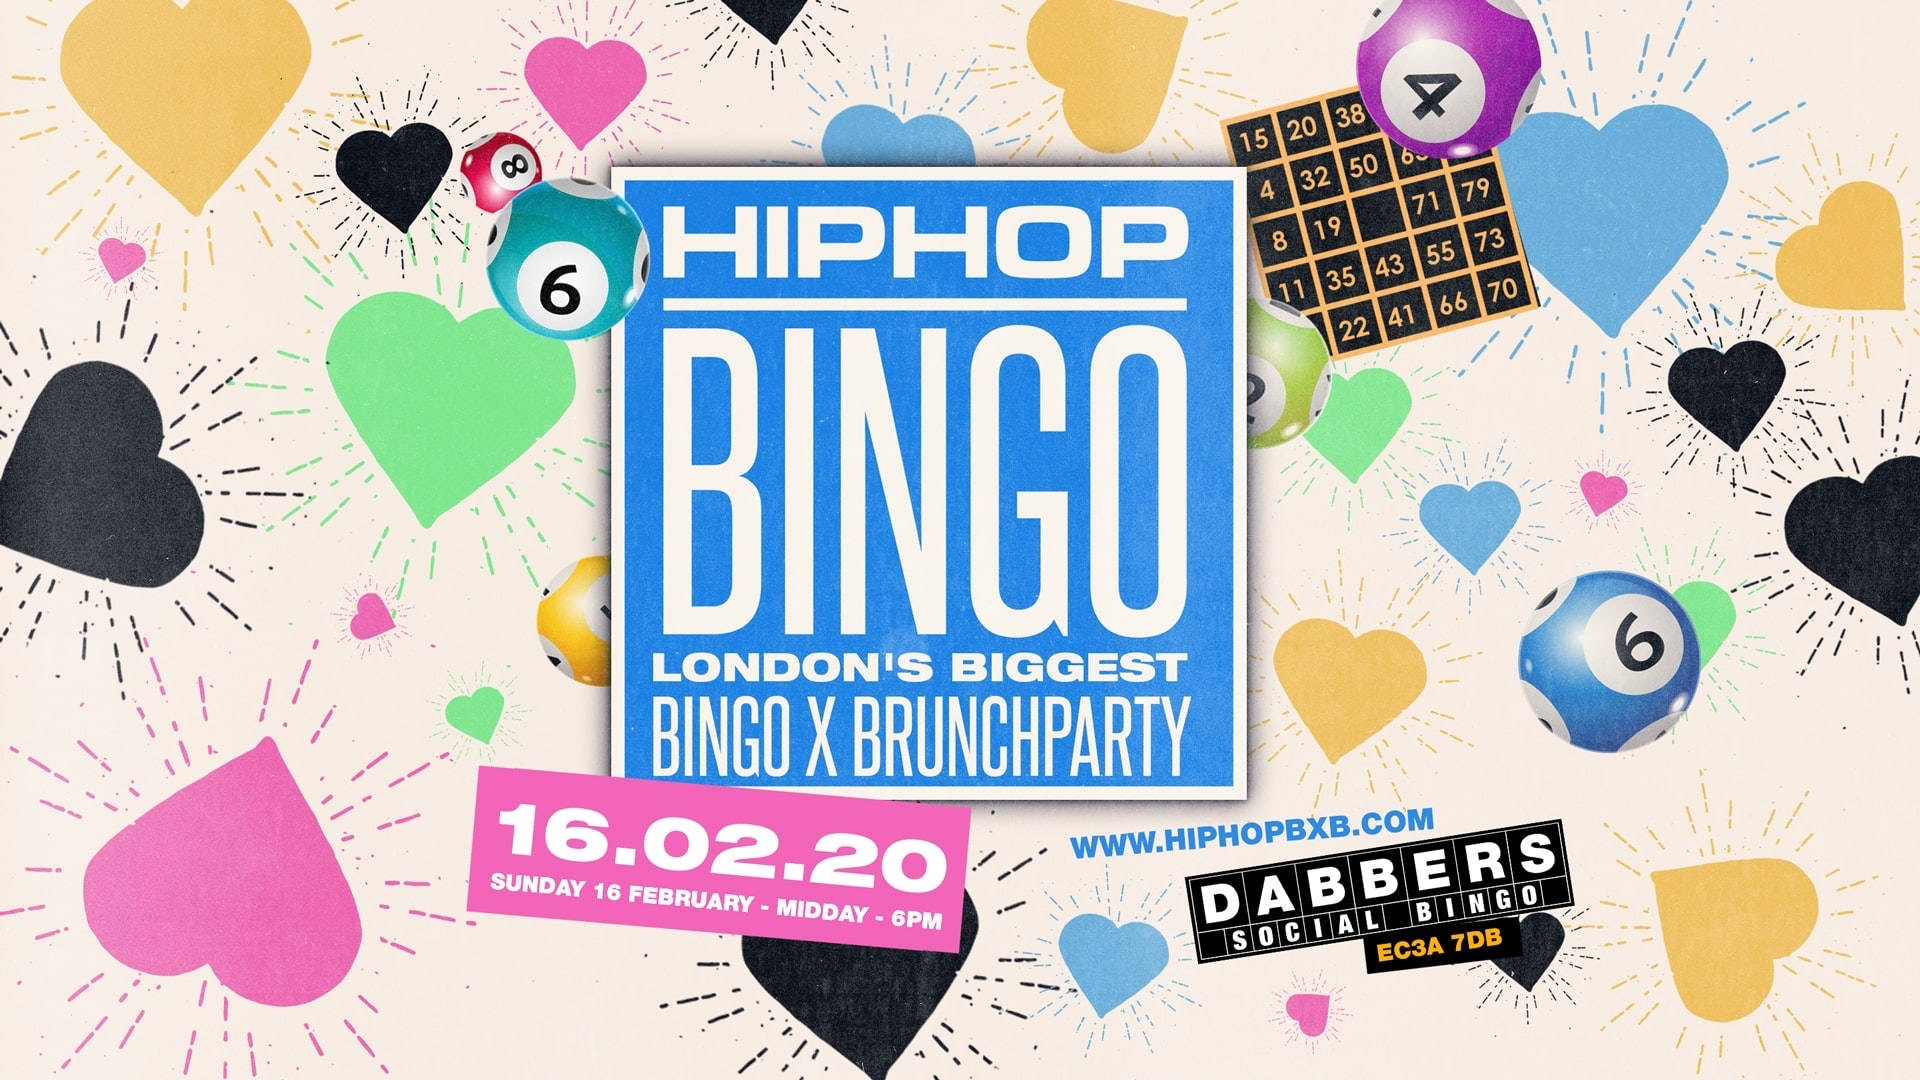 The London HipHop Bingo Brunch 💔 Valentines Weekend – February 16th | Live at Dabbers 🎉